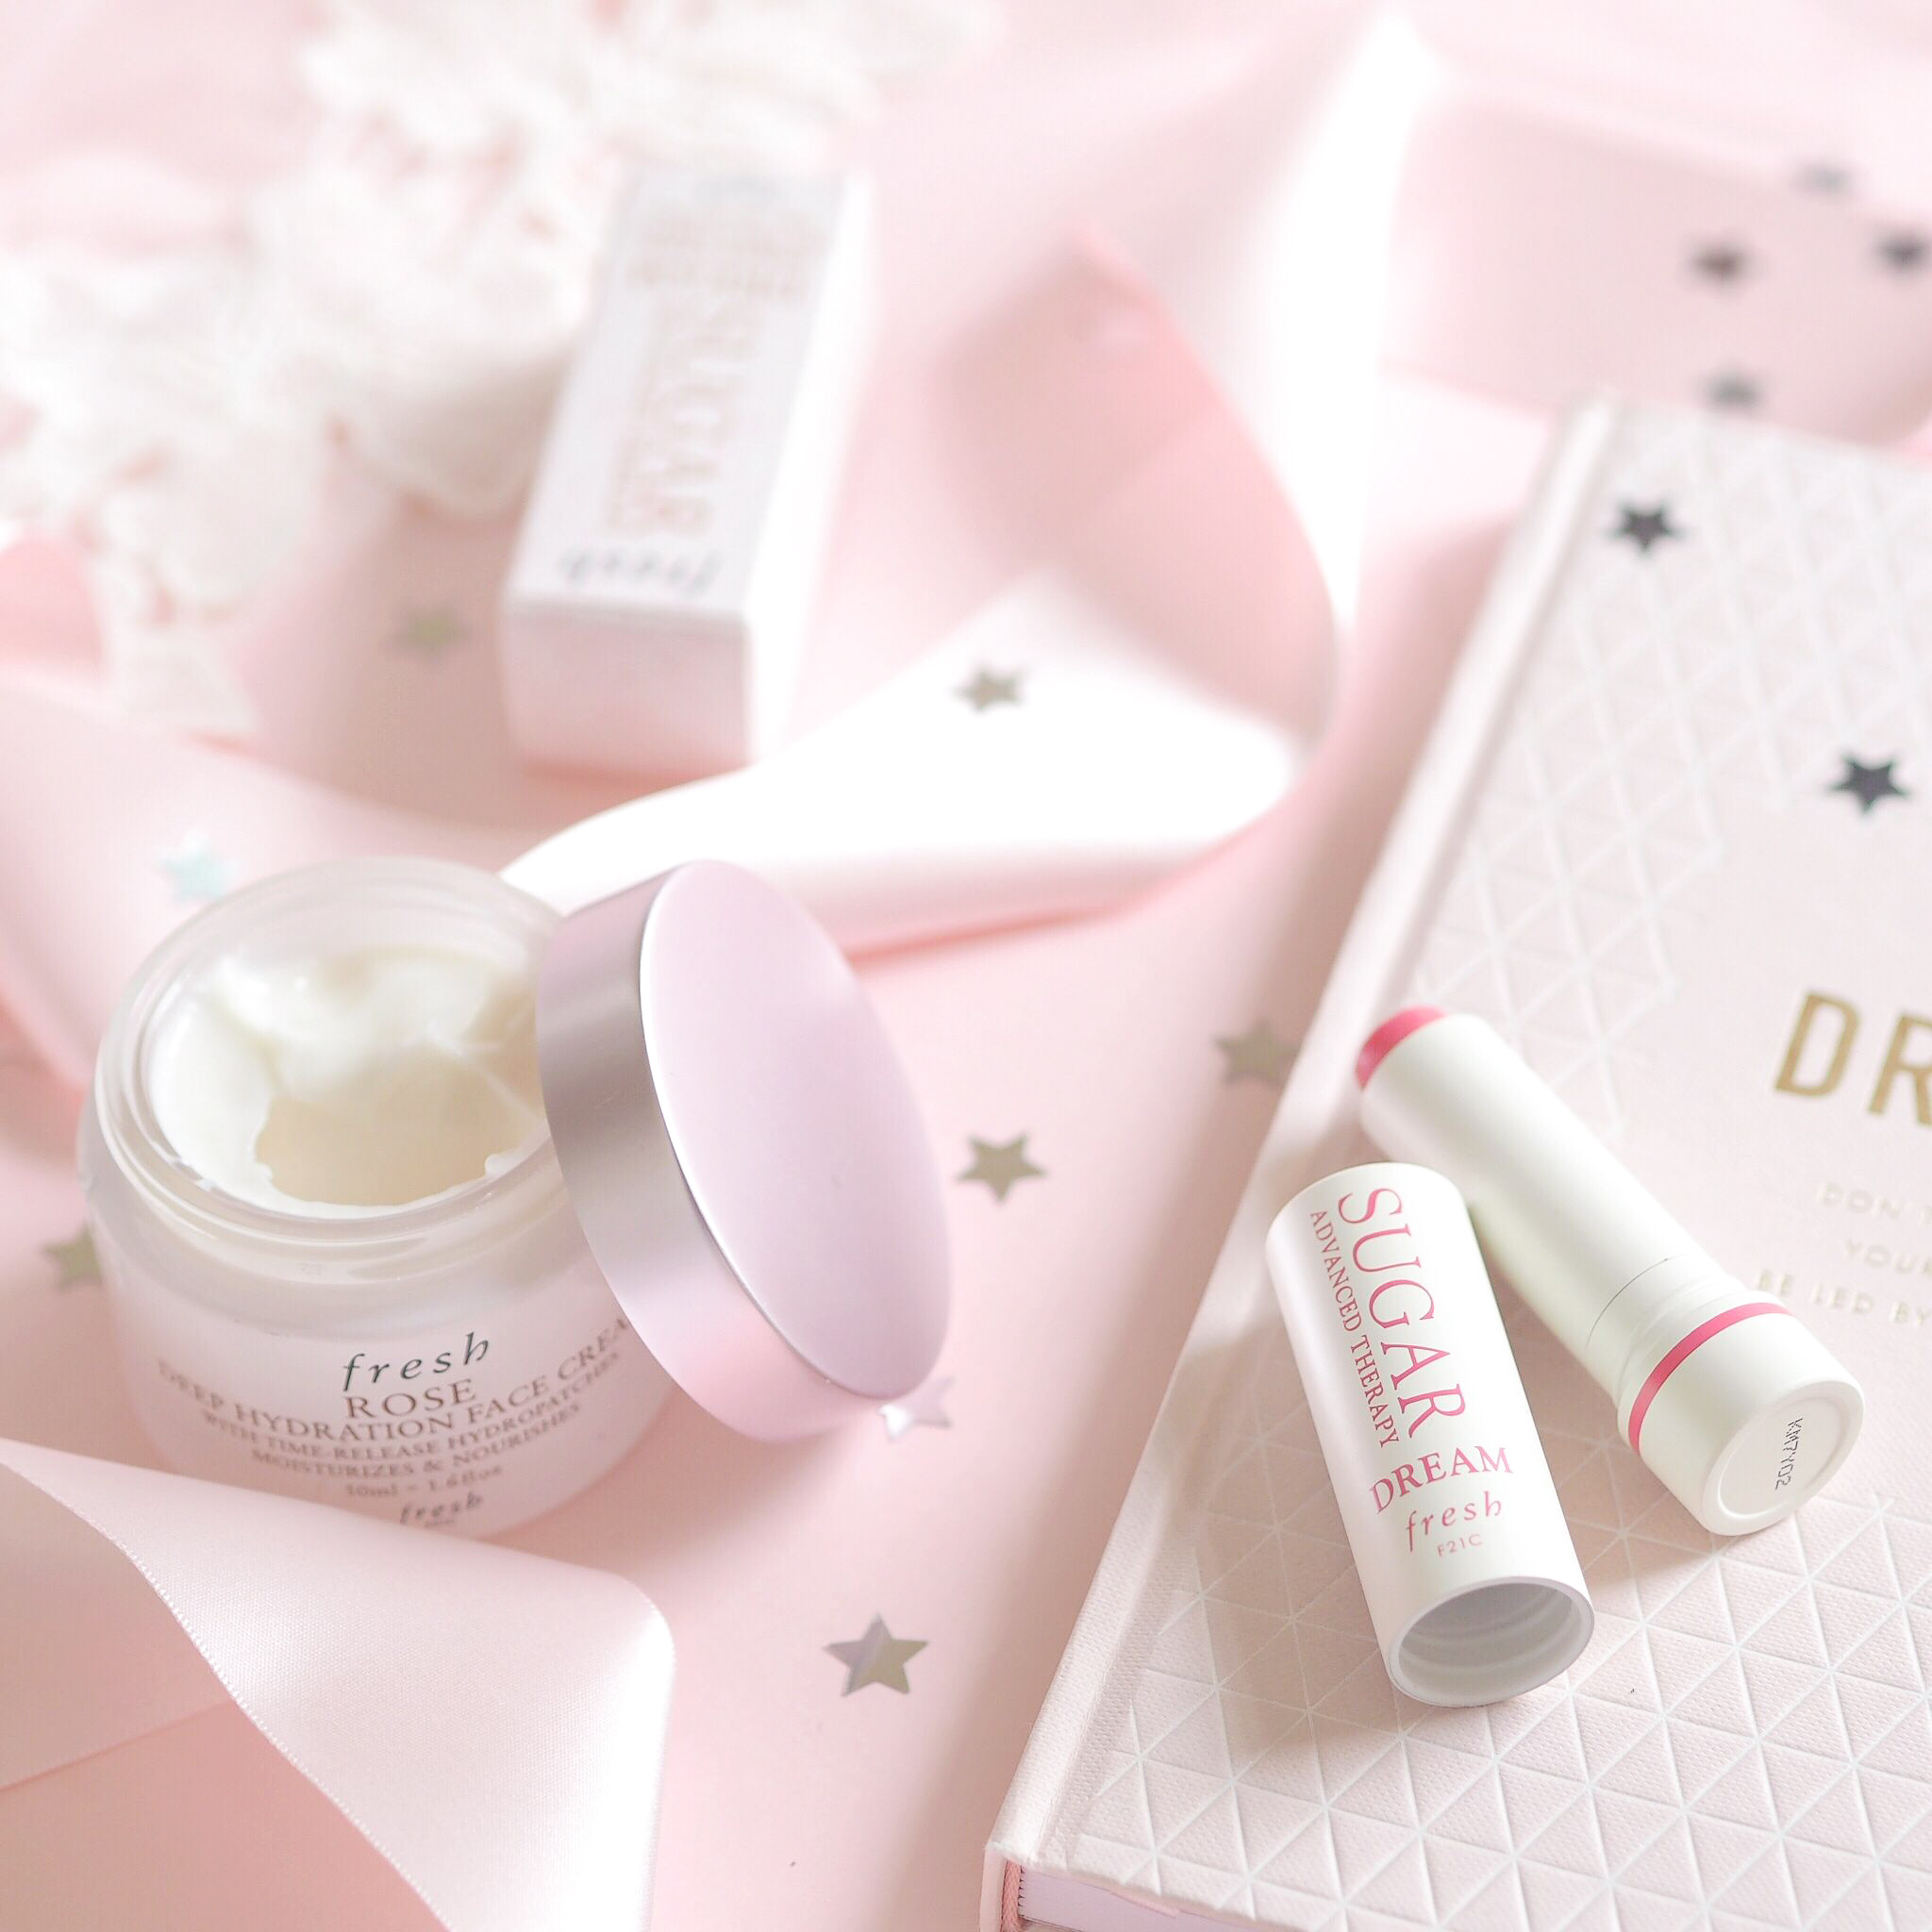 Dreamy Summer Skincare From Fresh Beauty, Sugar Dream Lip Treatment | Love Catherine